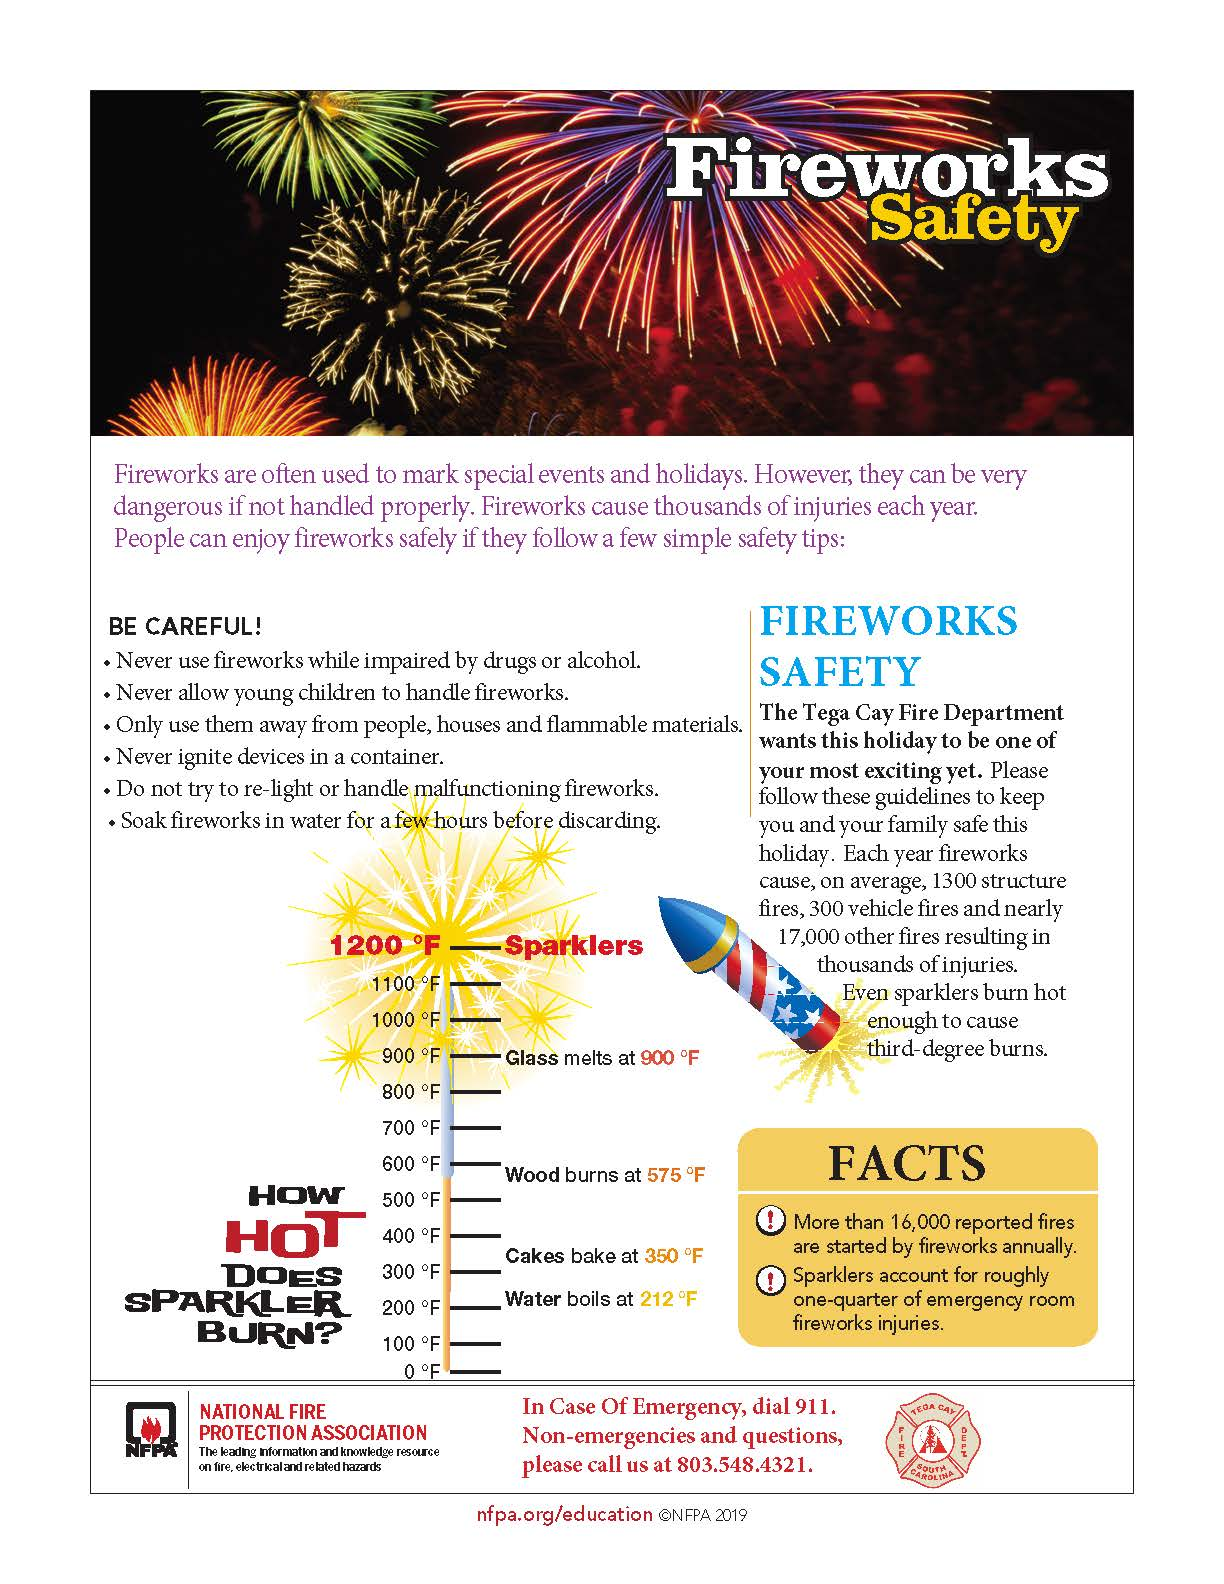 TCFD Fire Works Safety Tips